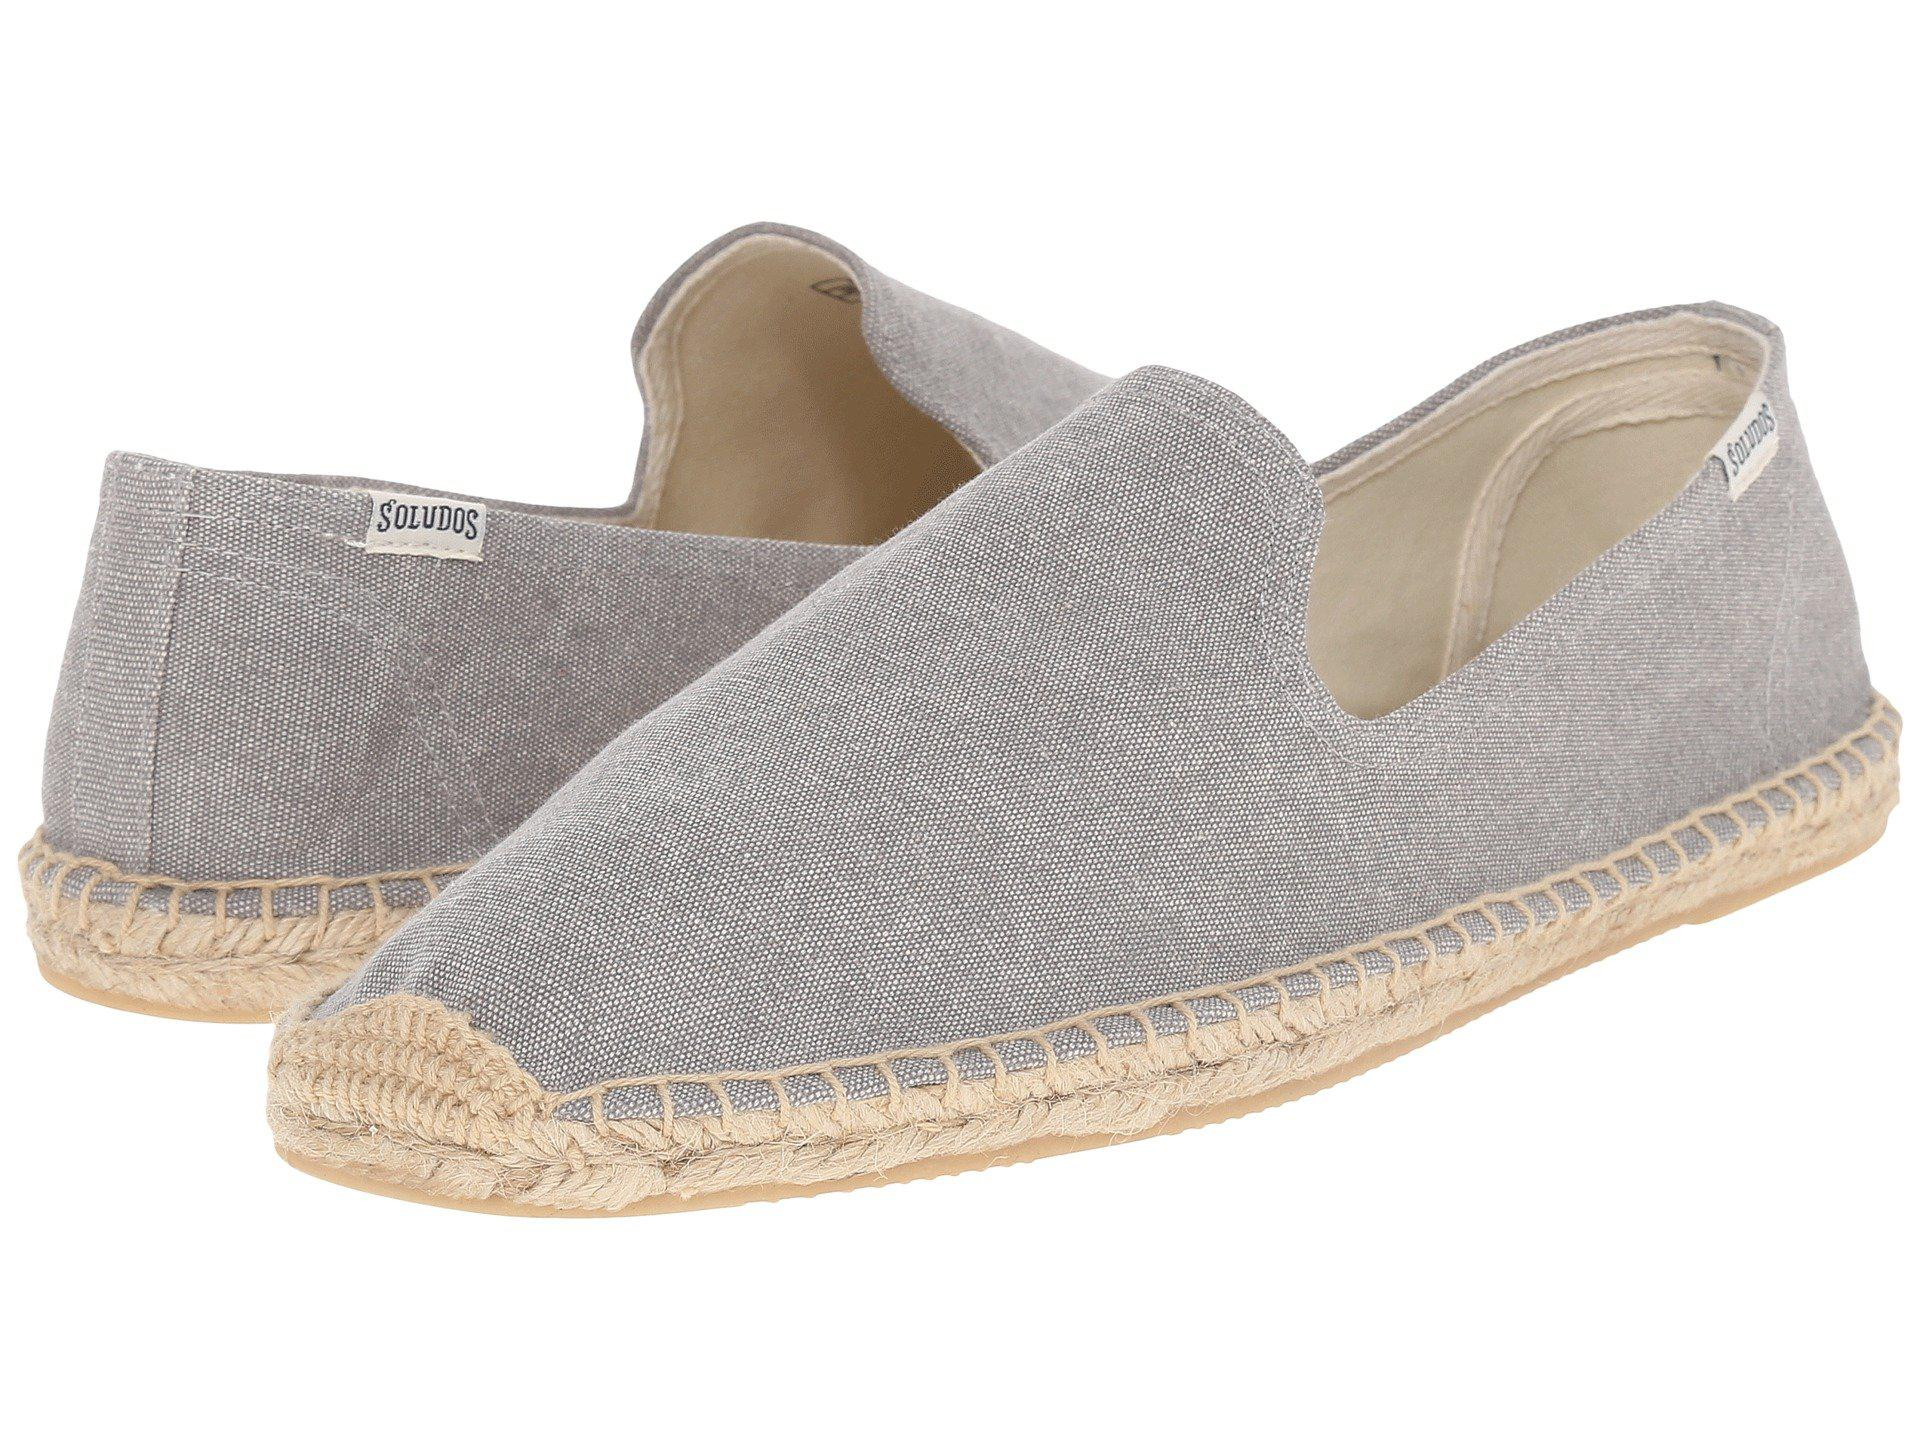 Soludos. Men's Smoking Slipper